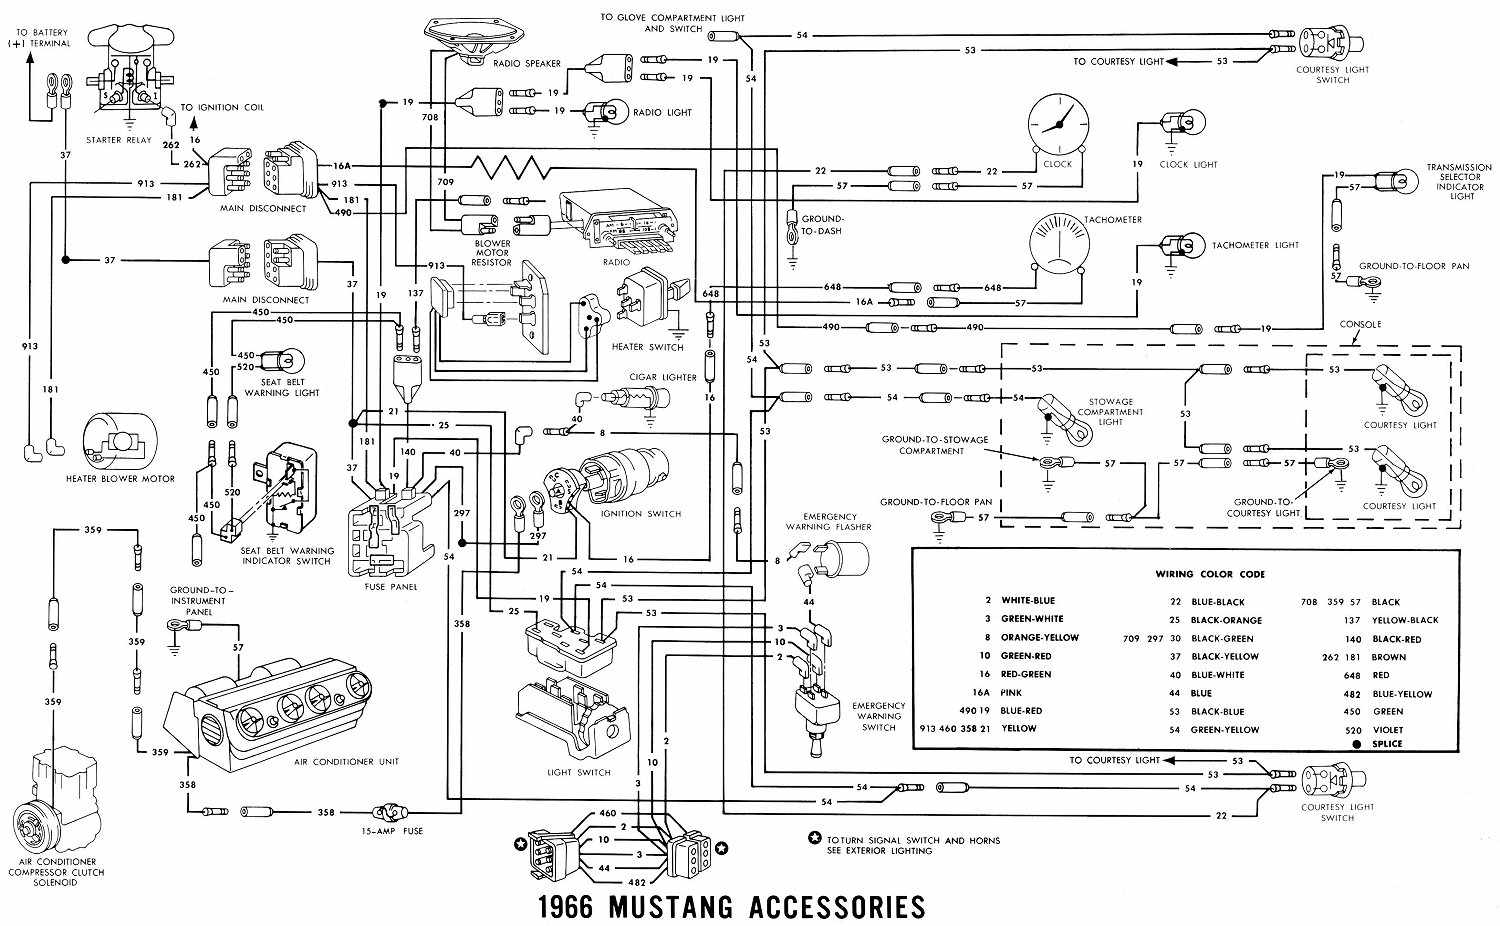 Accessories+Electrical+Wiring+Diagrams+Of+1966+Ford+Mustang Accessory Wiring Diagram on